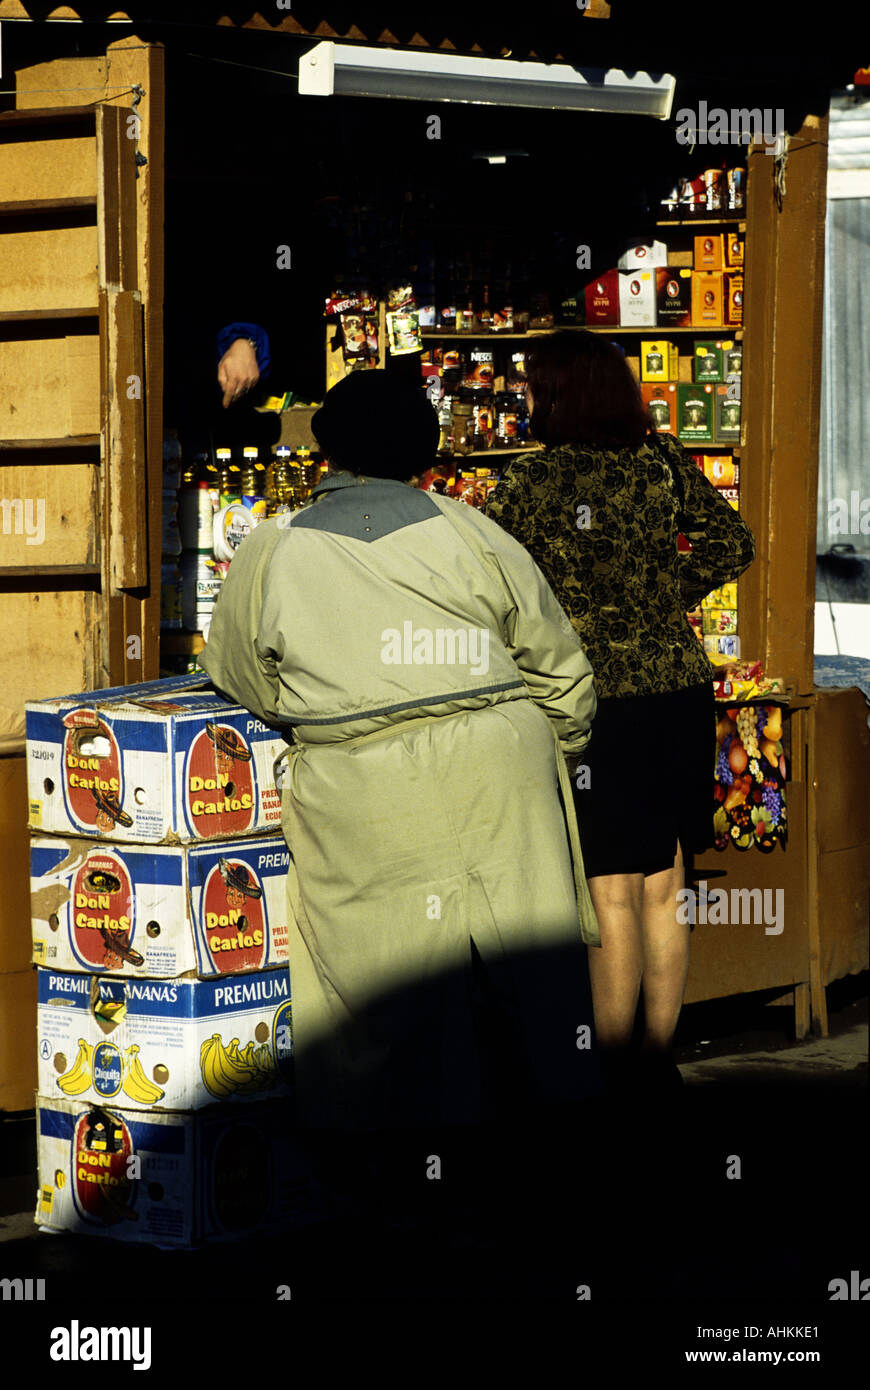 Shopping at a kiosk in the Market Place Trading Arcade, Kostrama, Russia - Stock Image